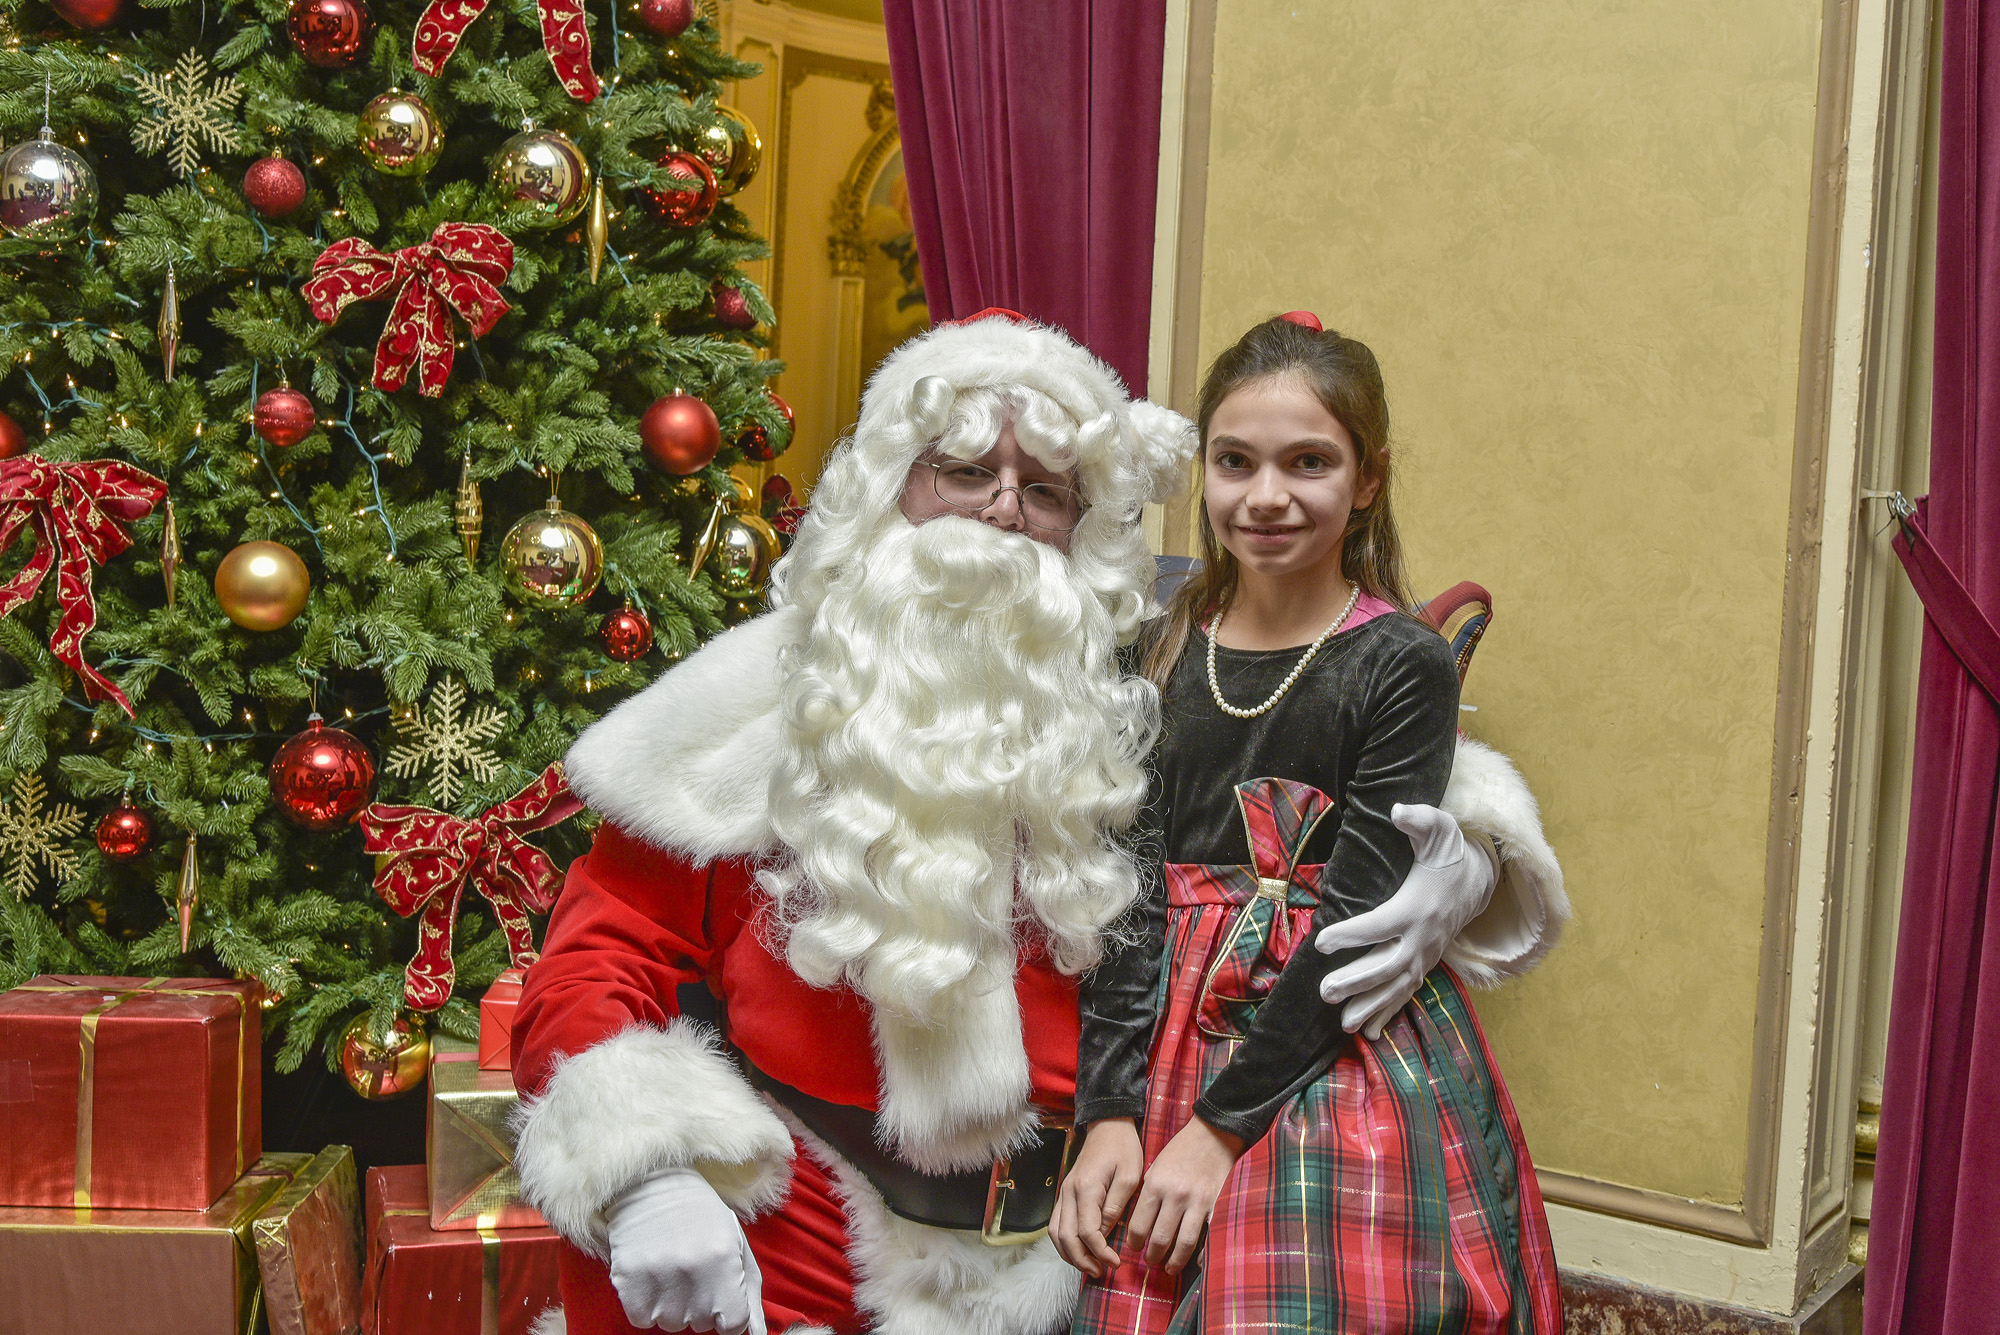 All children are invited to have their photo taken with Santa Claus for FREE.